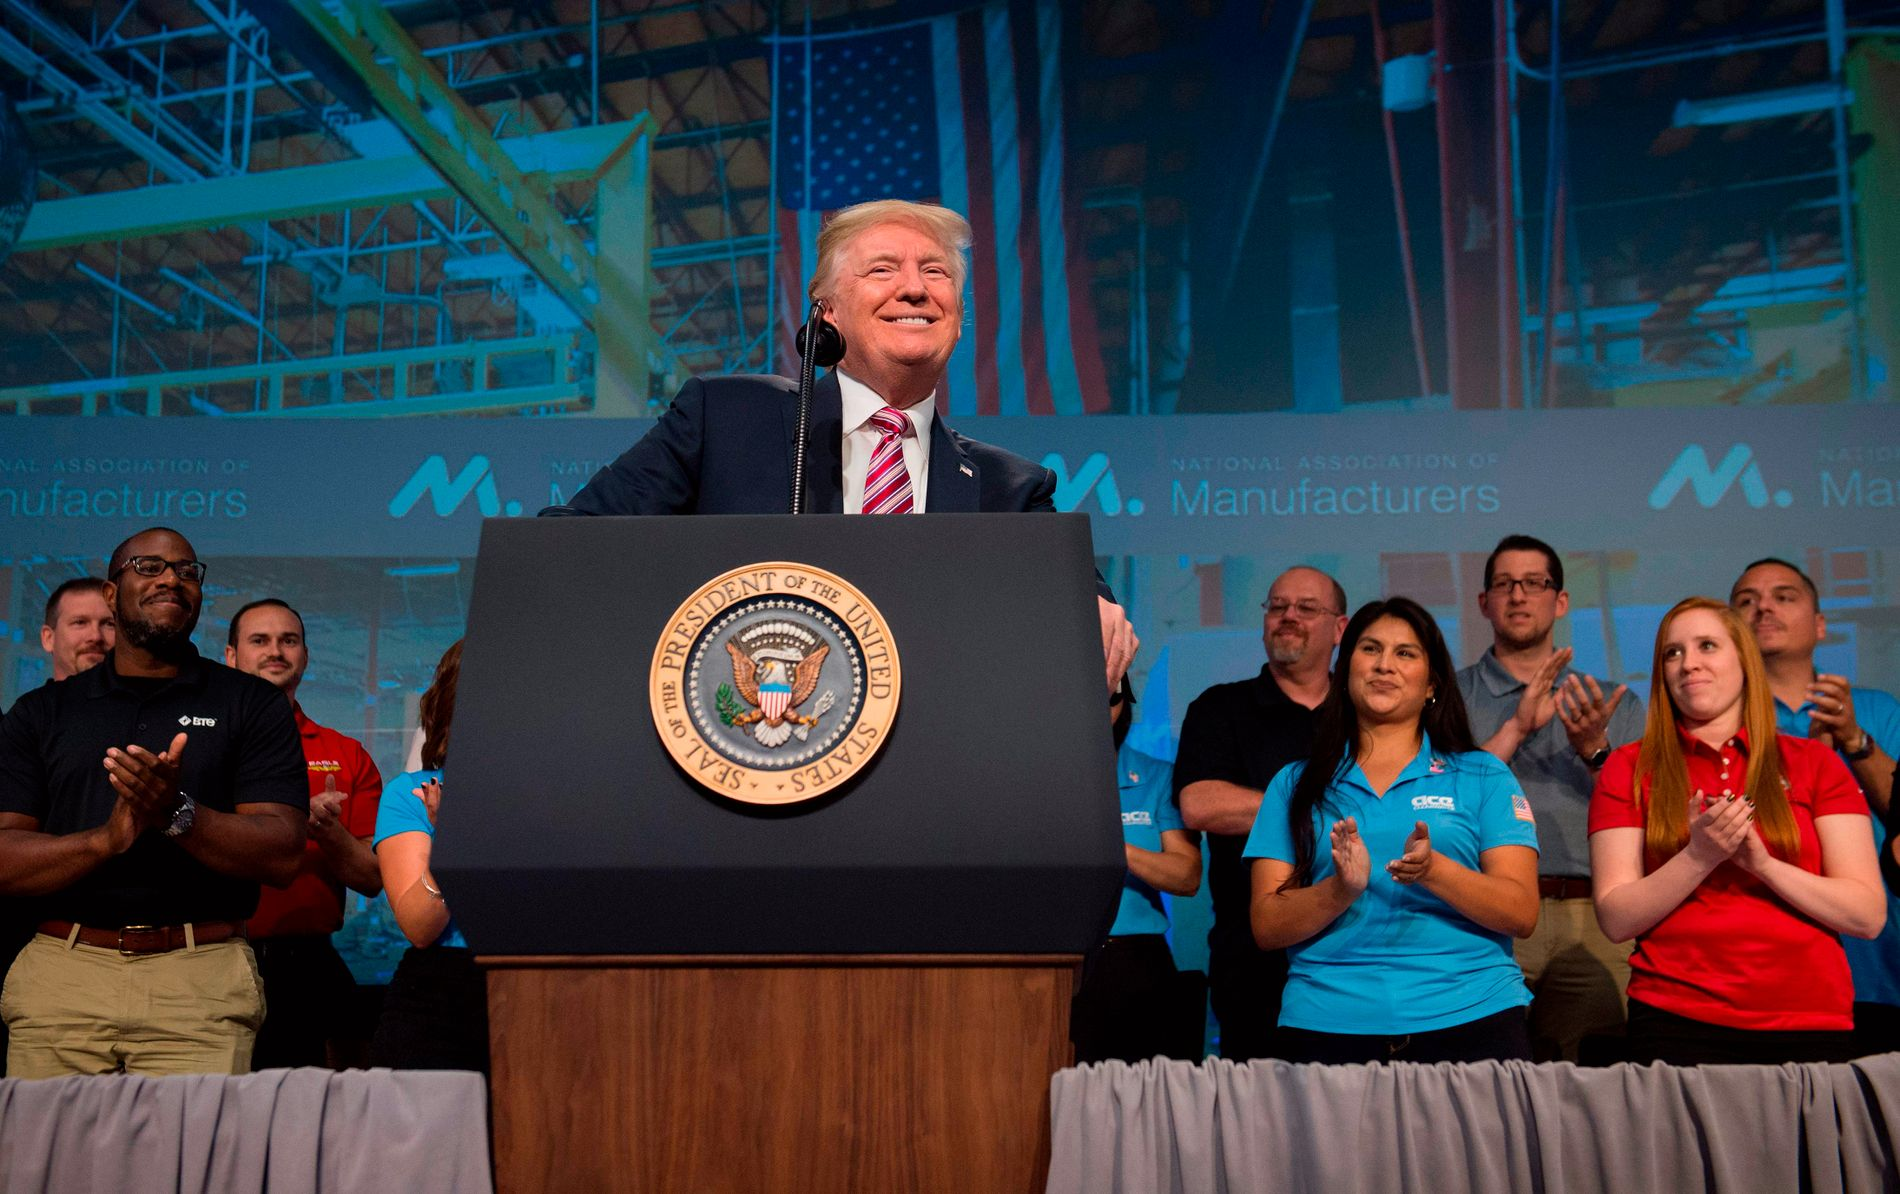 US President Donald Trump speaks to the National Association of Manufacturers in Washington, DC, September 29, 2017. / AFP PHOTO / SAUL LOEB